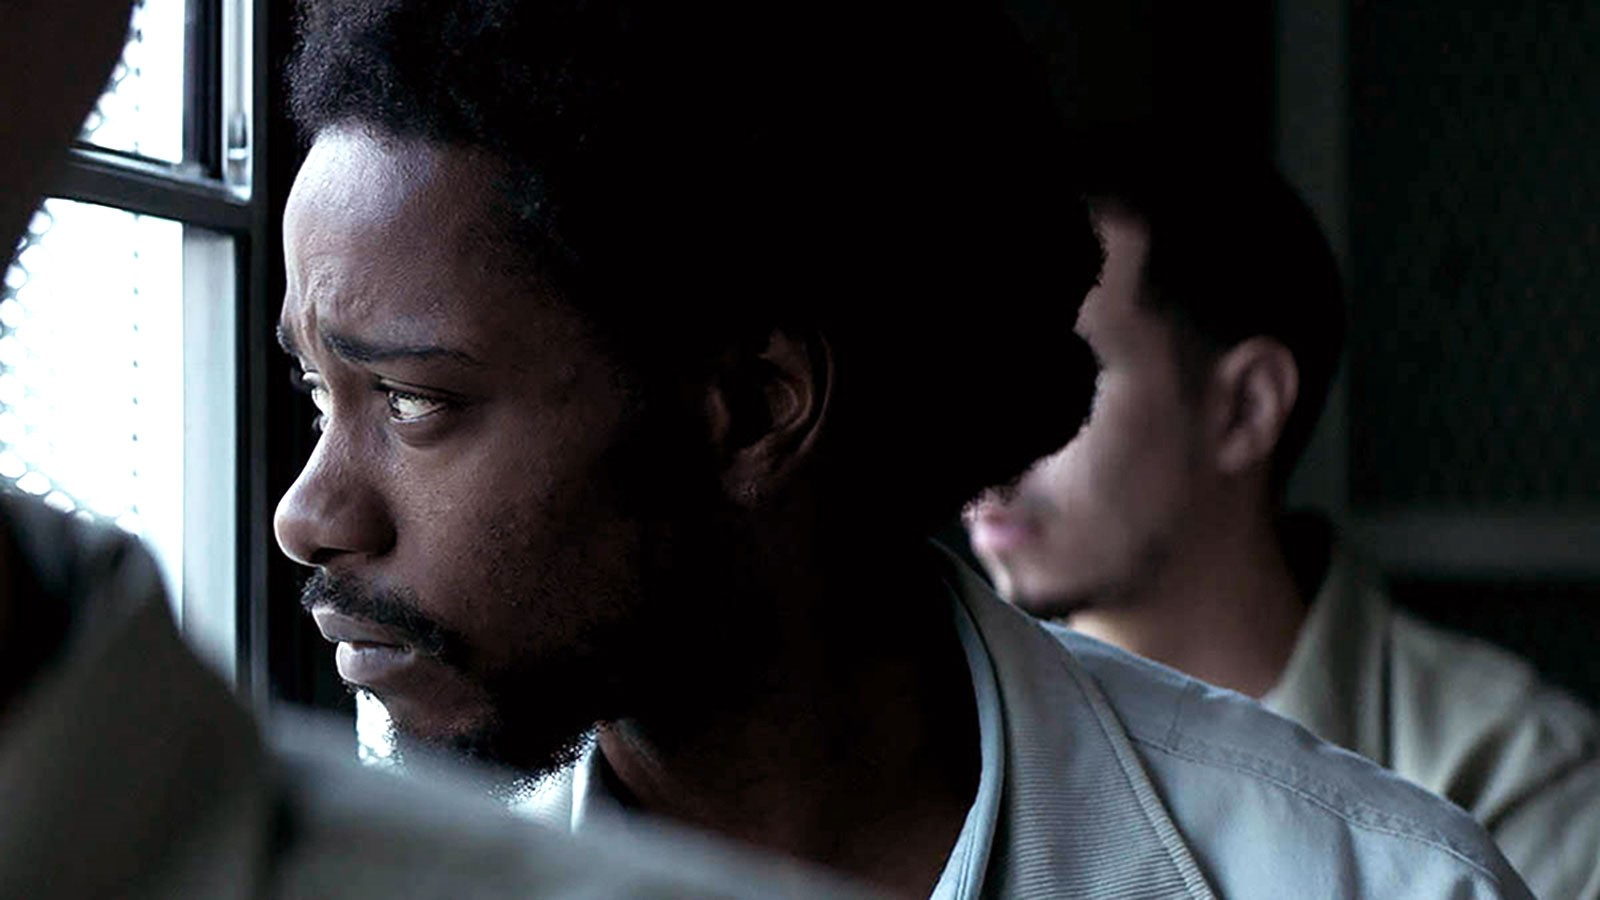 'Crown Heights' is a tortured epic that deserved better presentation